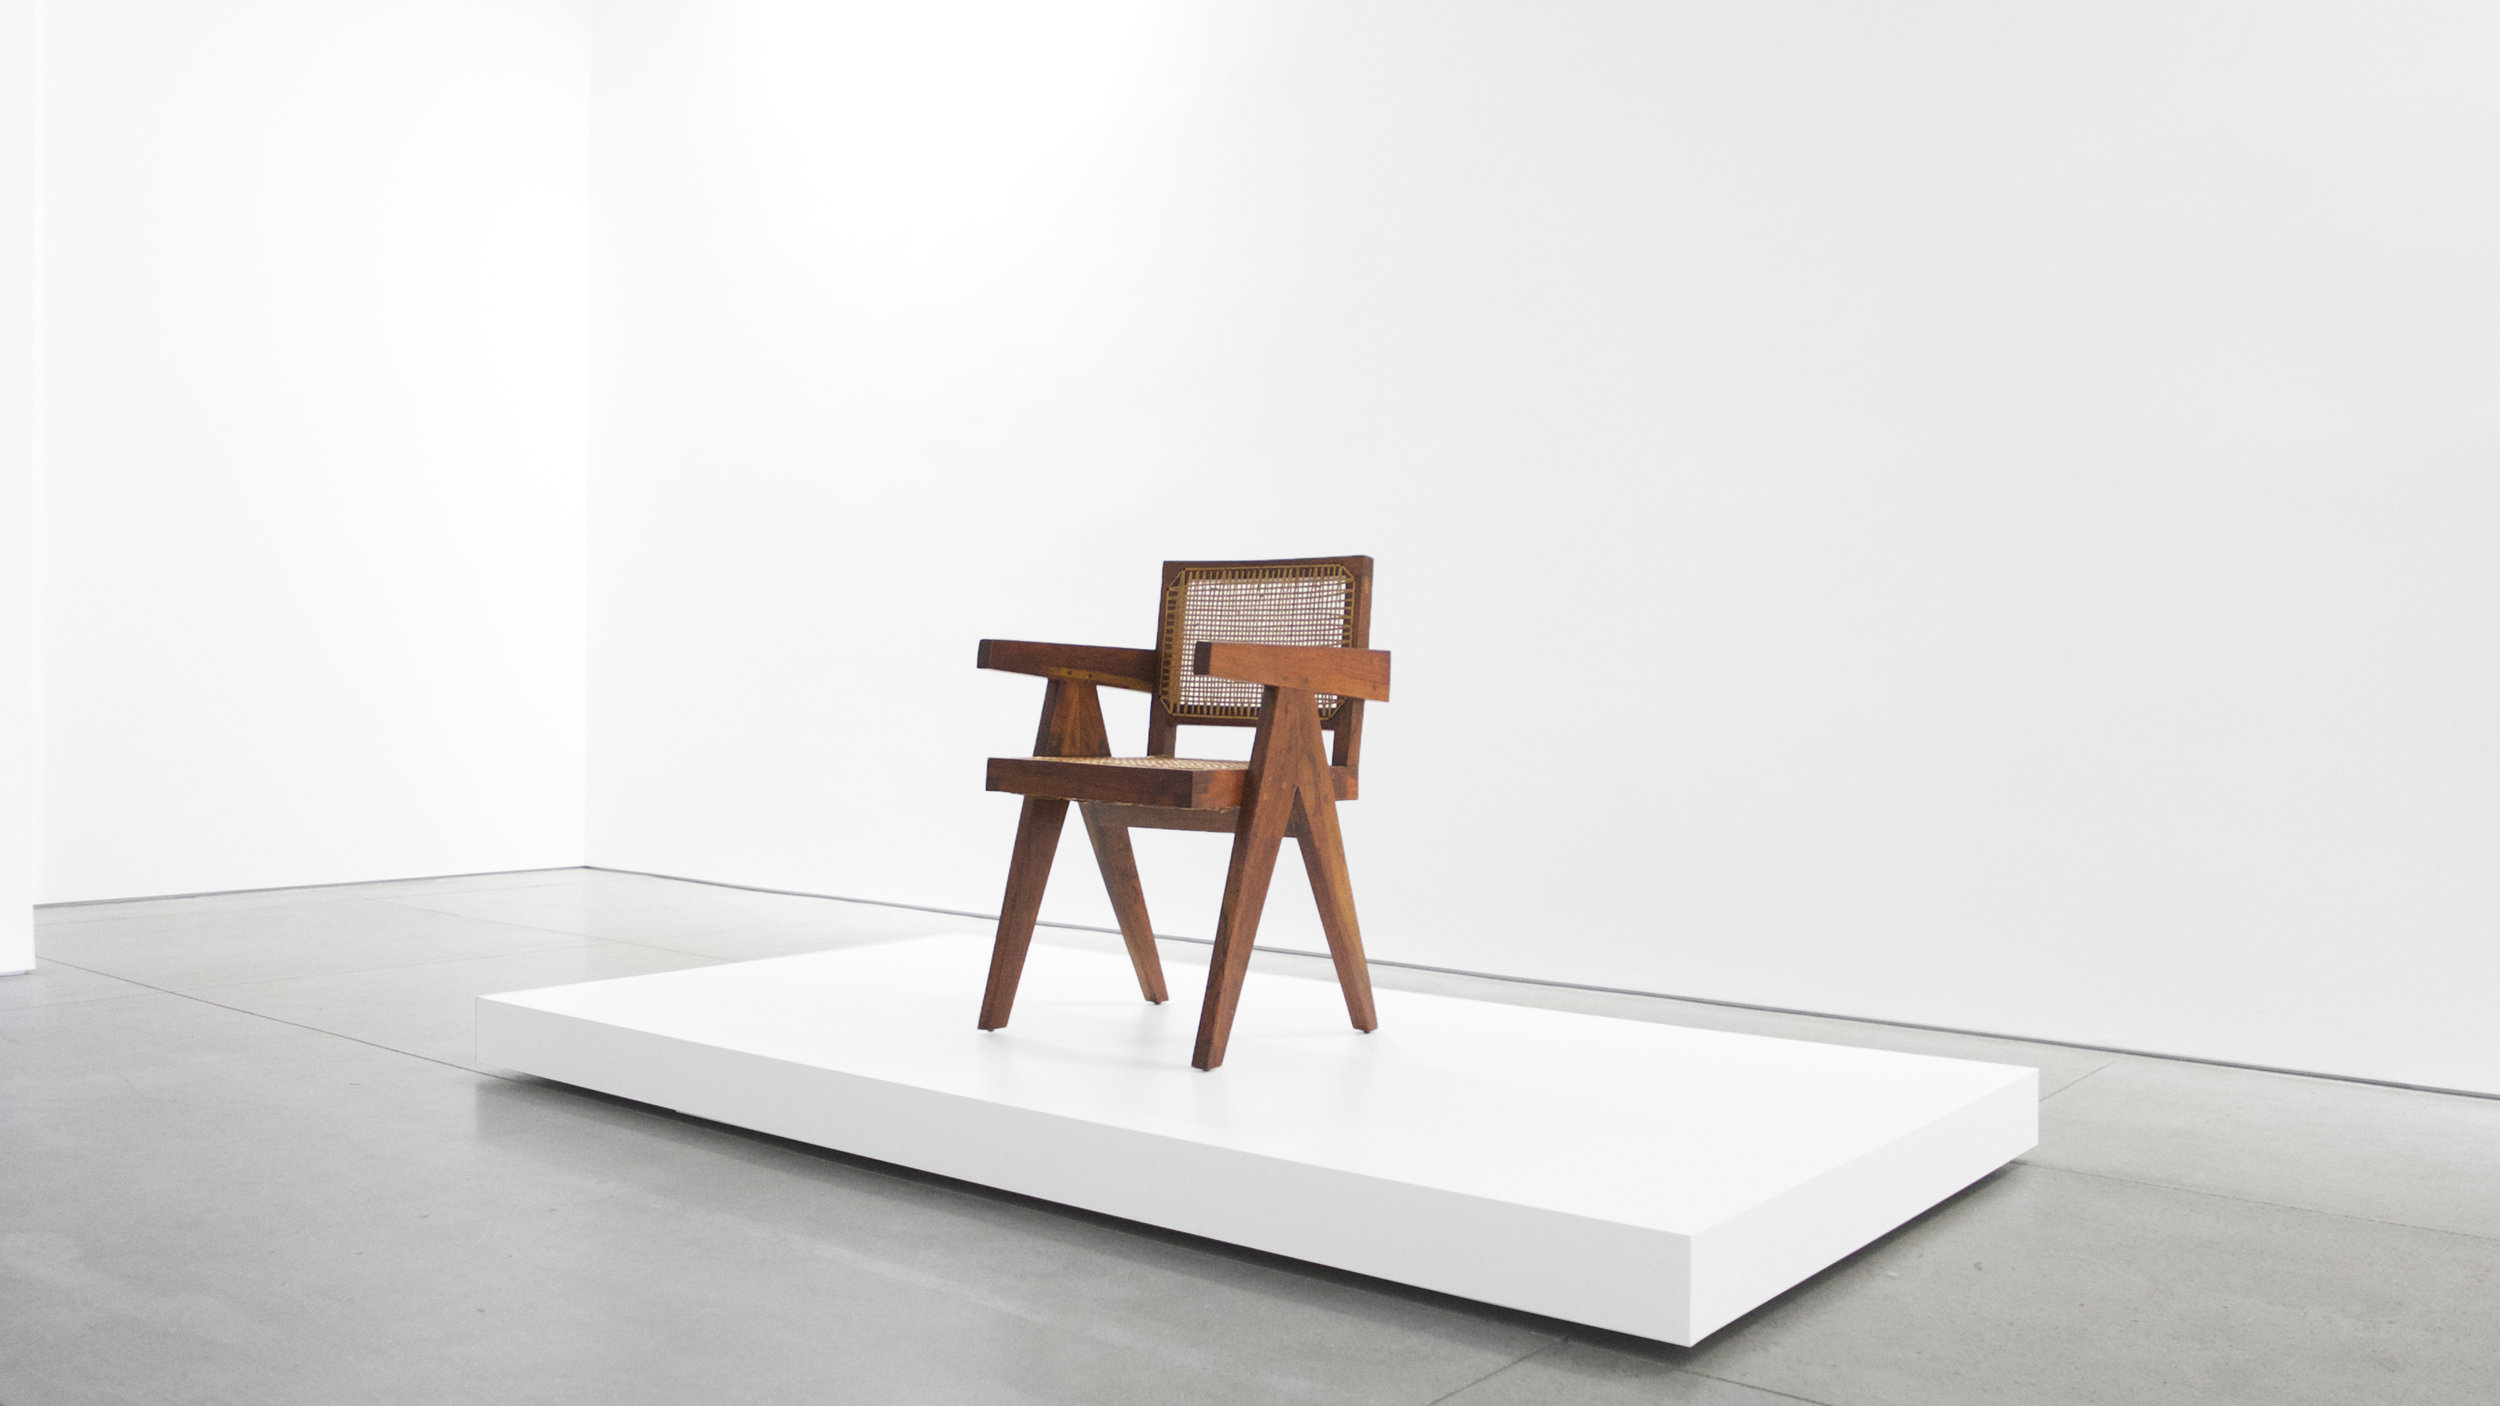 Pierre Jeanneret, Teak Conference Chair from the City of Chandigarh, India, c. 1952, 31 H x 18 W x 19.75 D inches_3.jpg